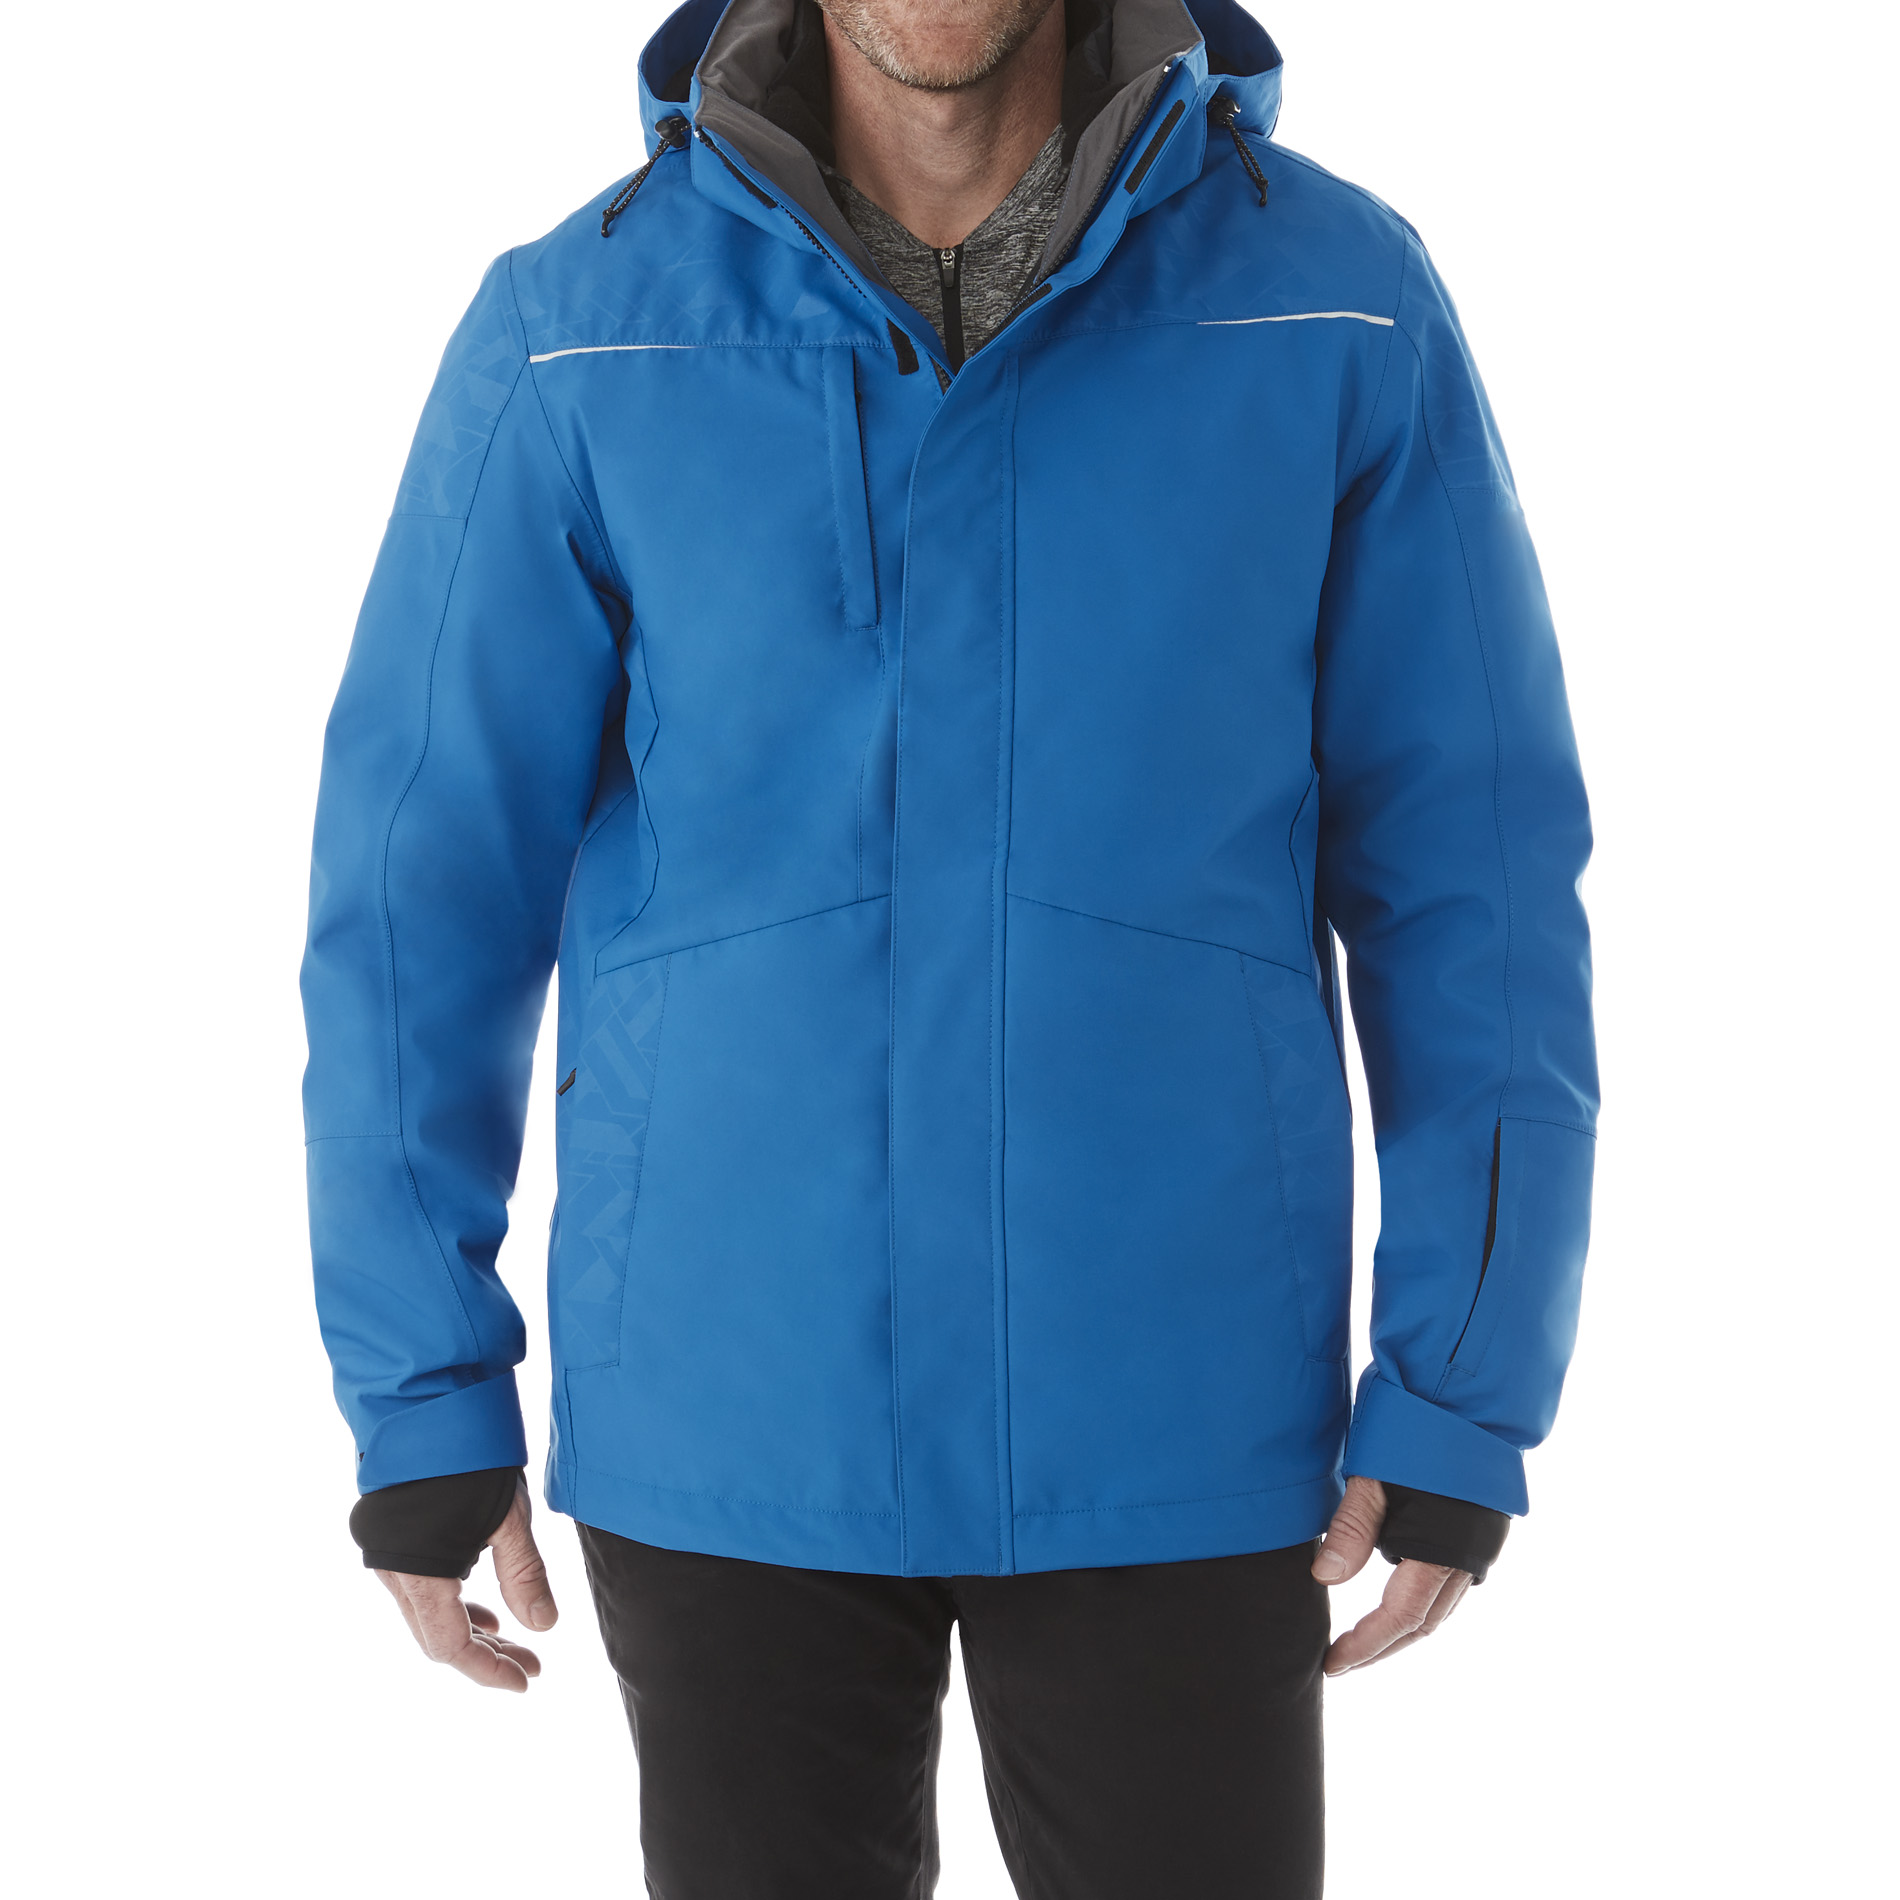 Elevate TM19306 - Men's YAMASKA 3-in-1 Jacket